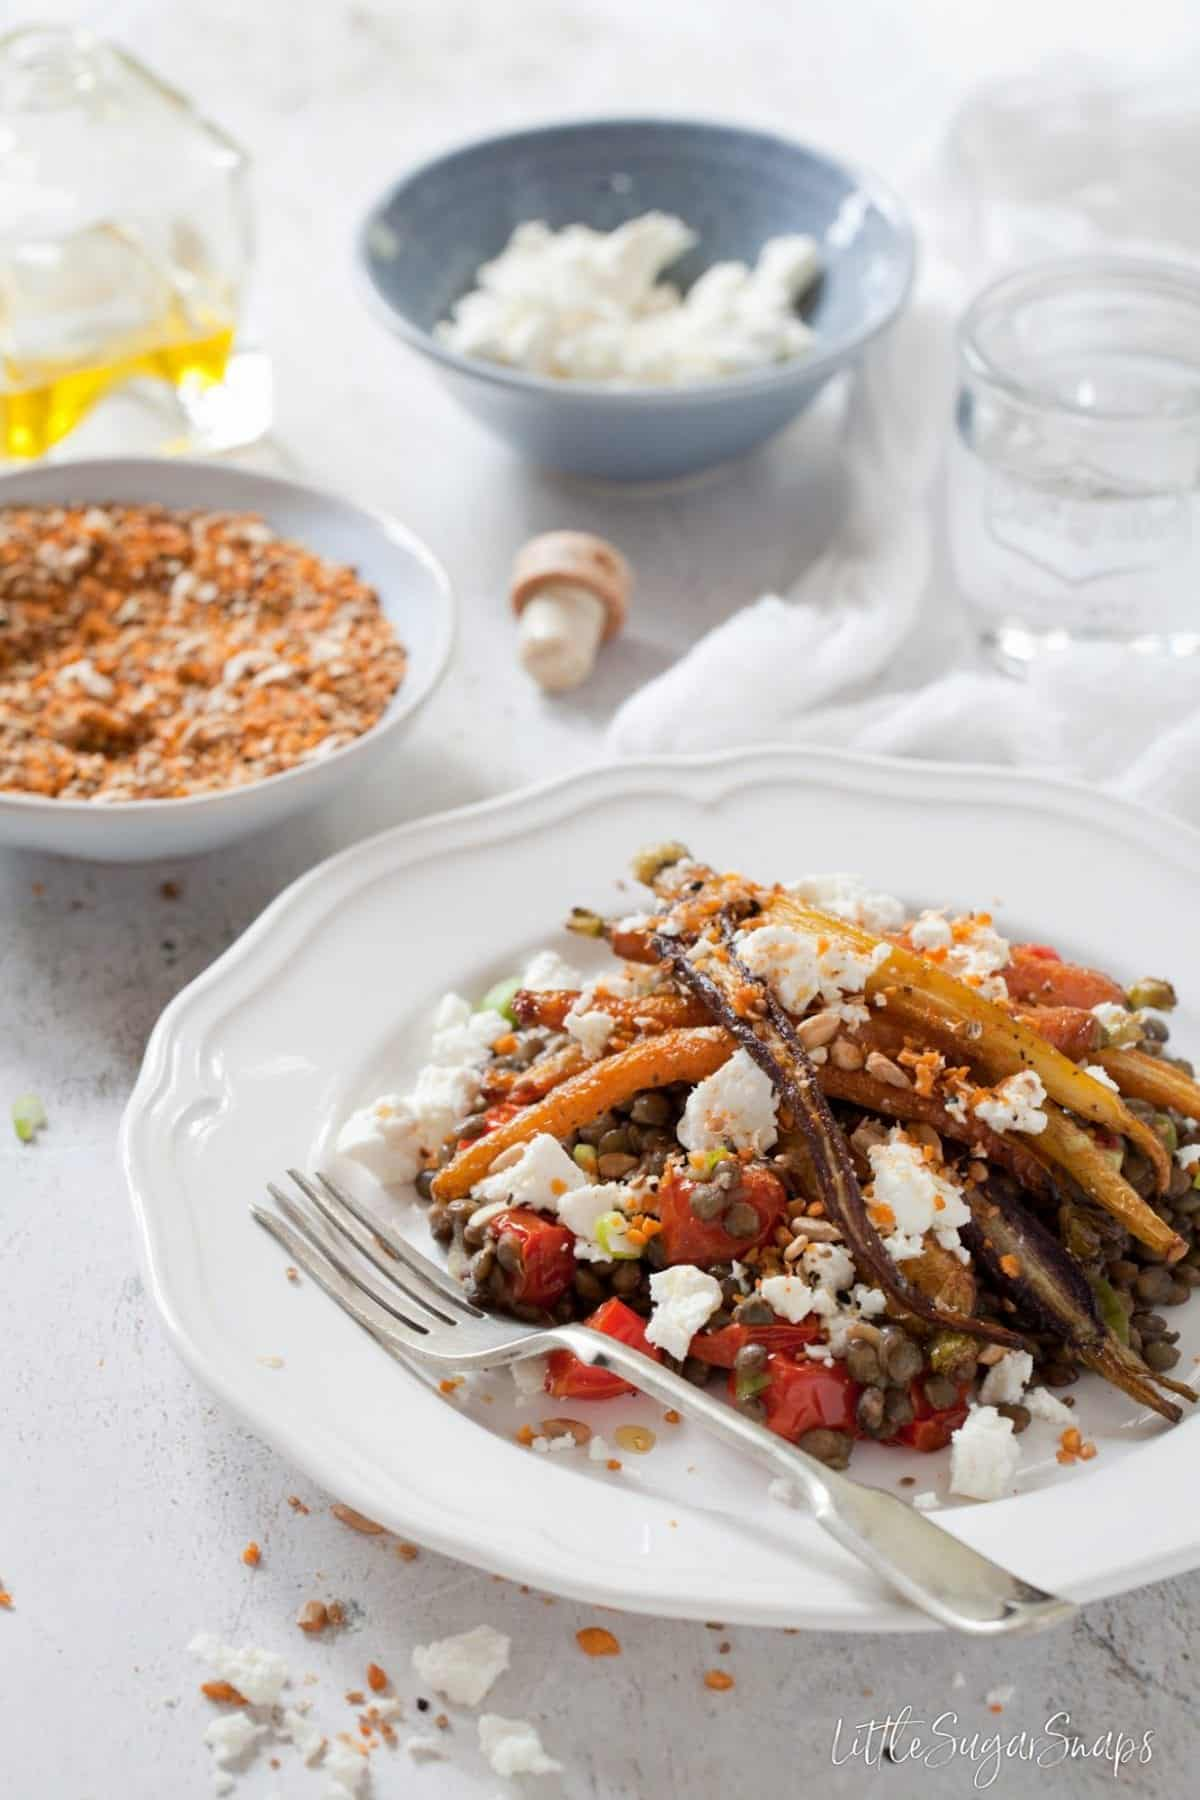 Warm Roast Carrot Lentil Salad